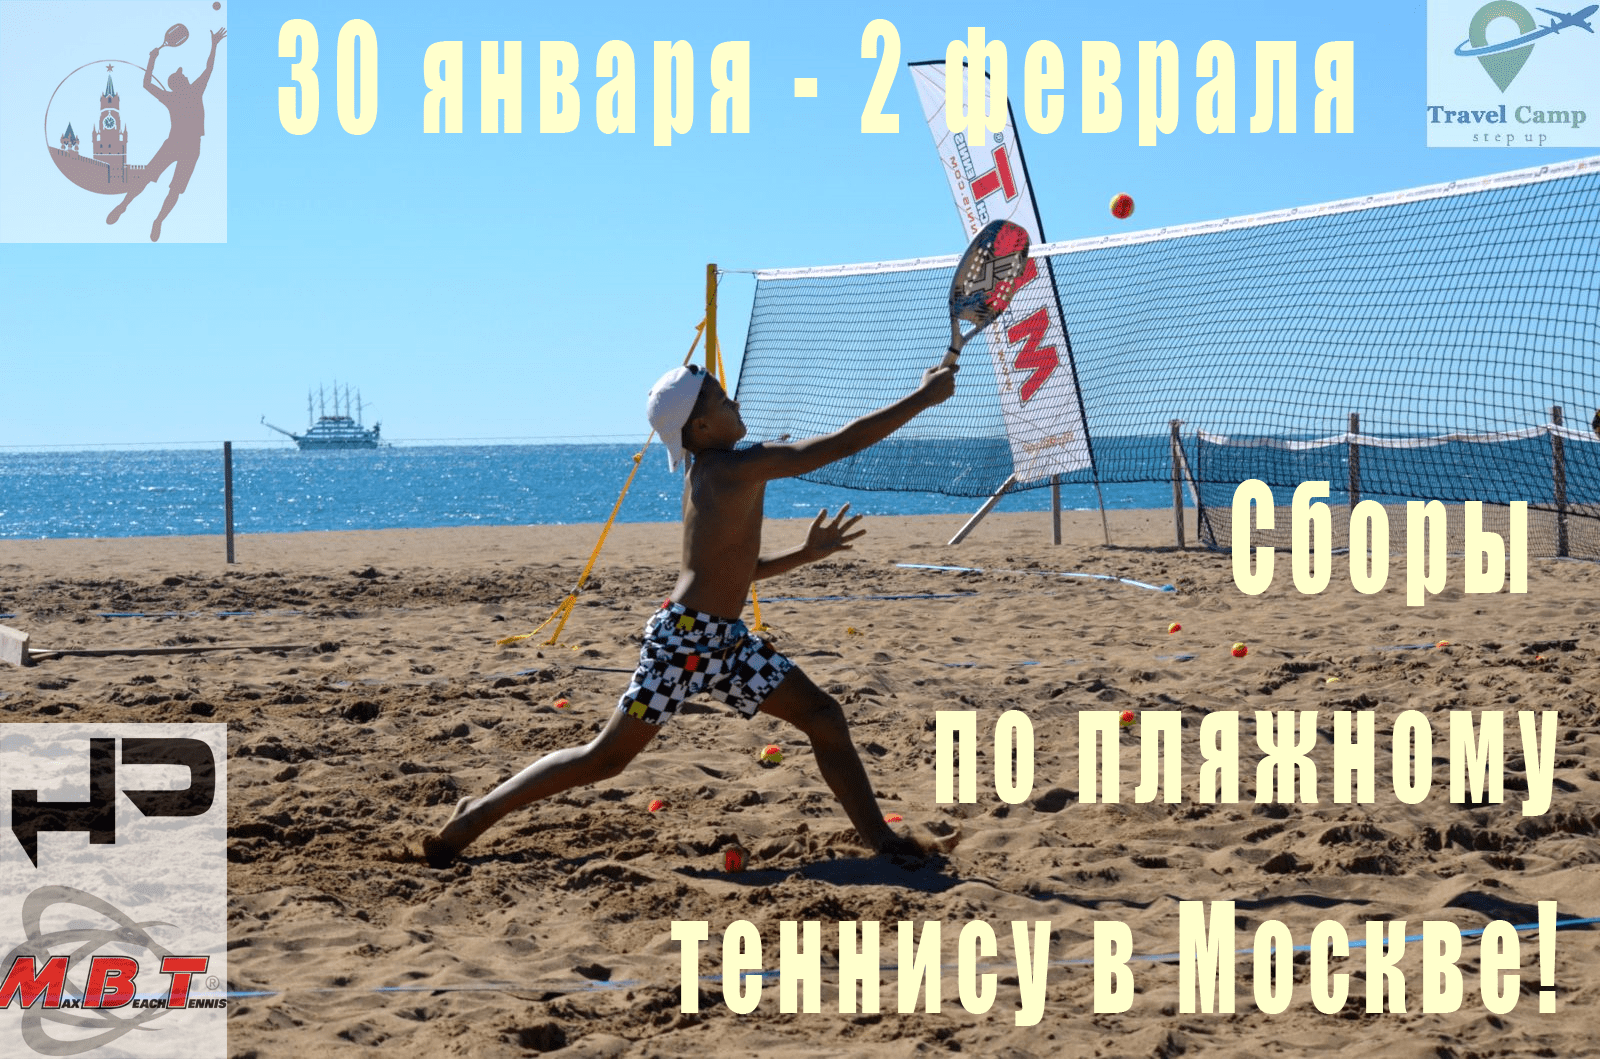 Travel Camp Moscow Open 2019